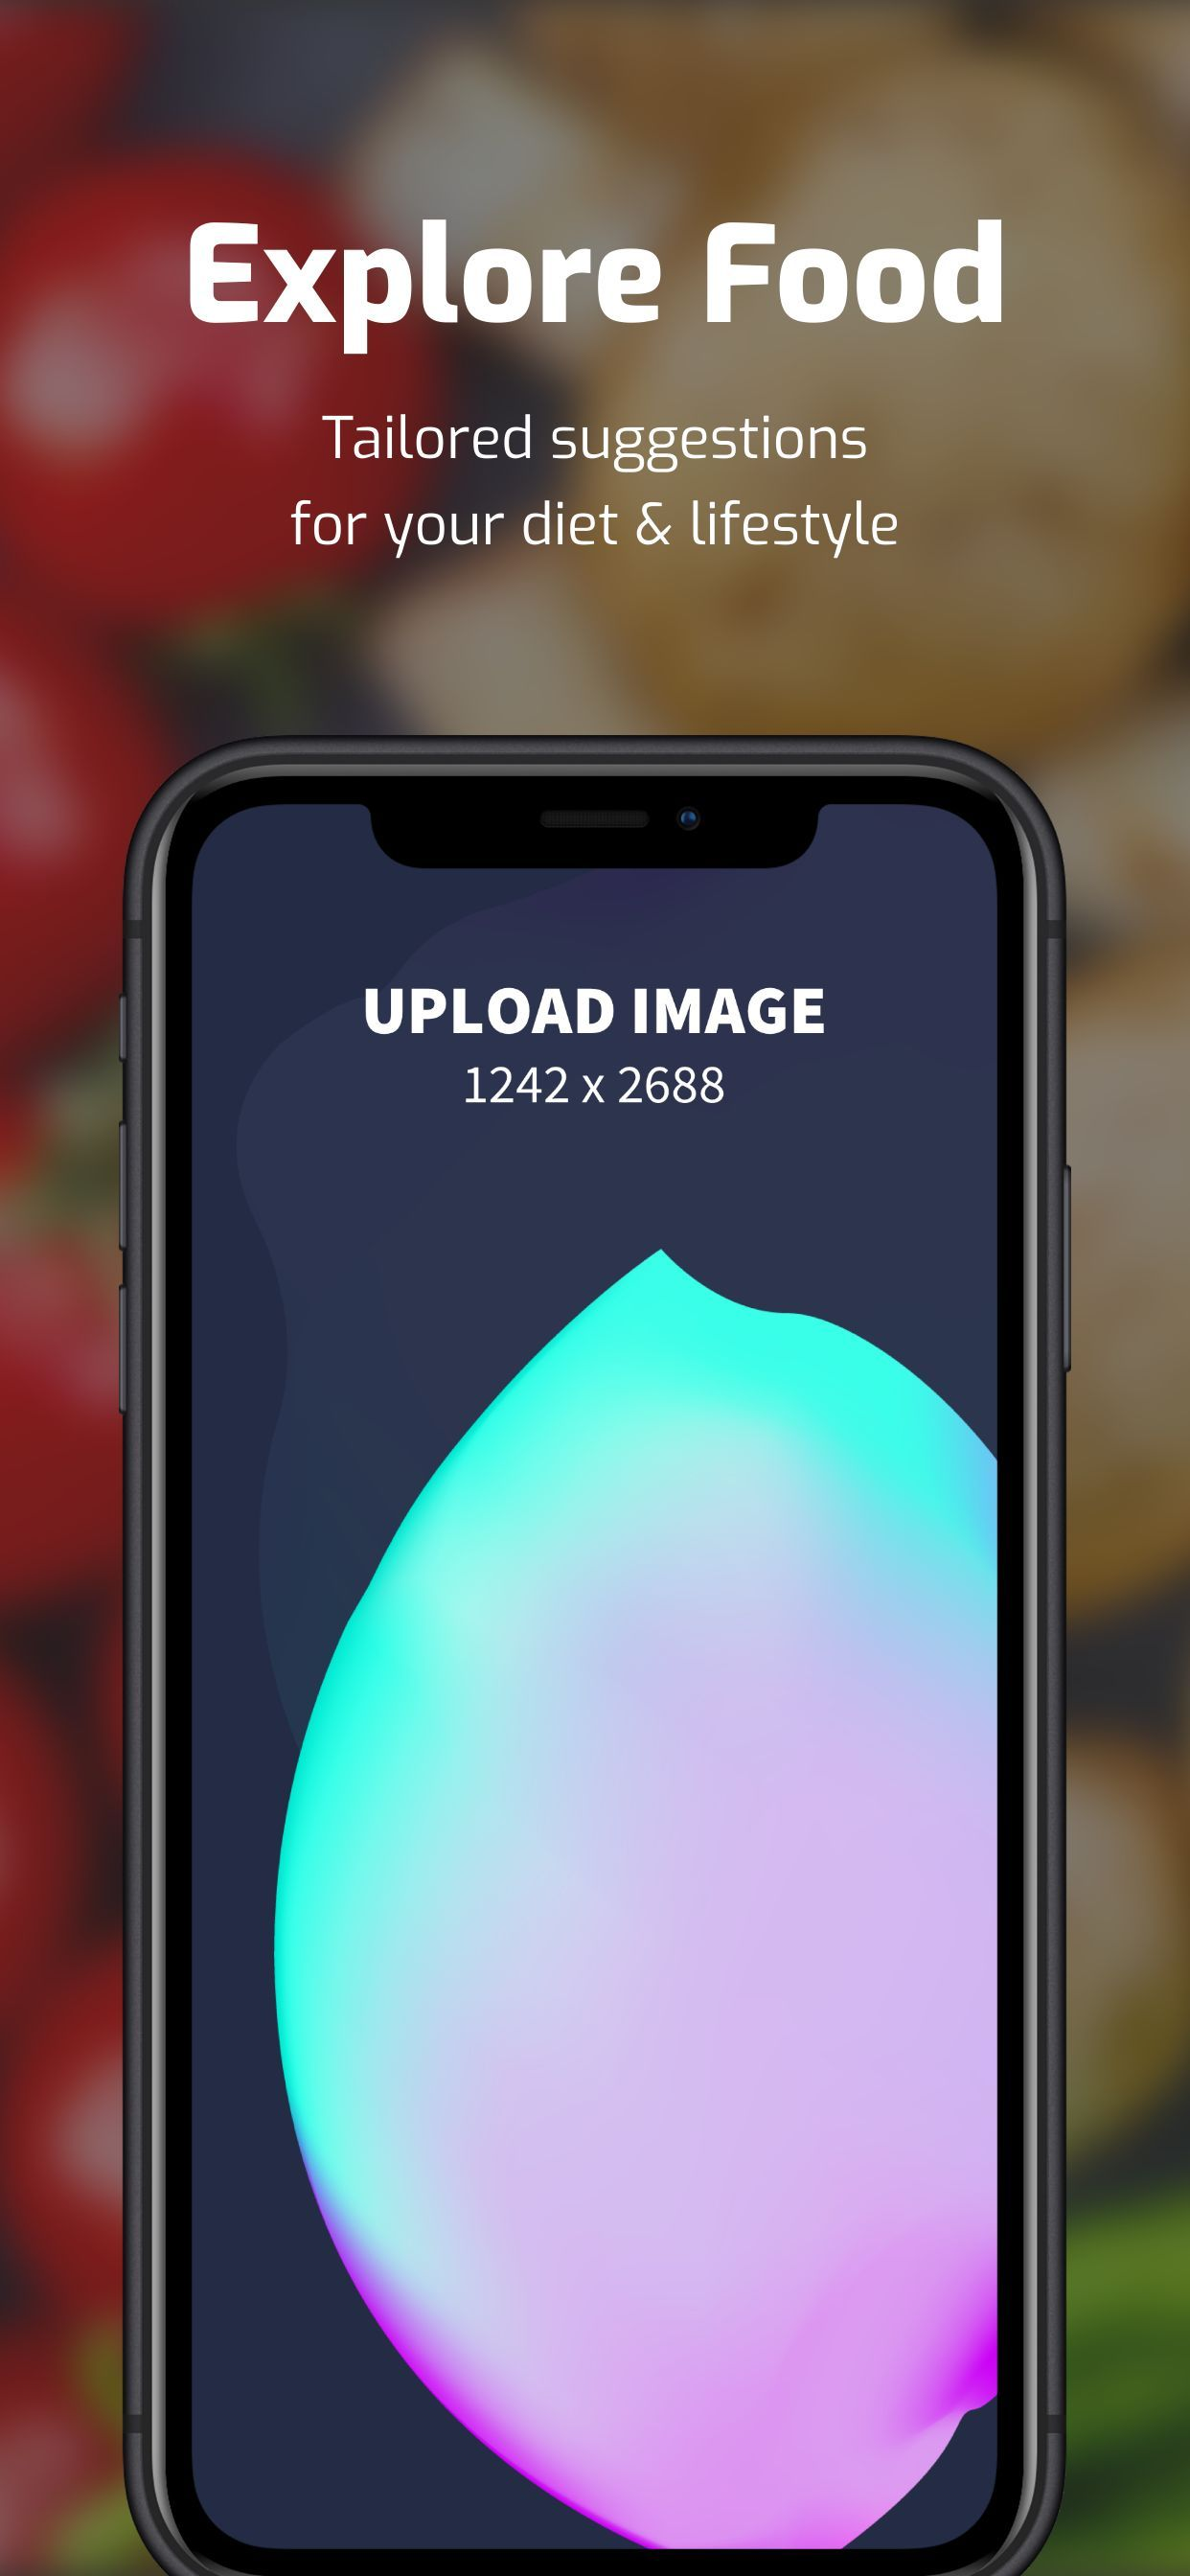 iPhone XS Max Screenshot 50 template. Quickly edit fonts, text, colors, and more for free.